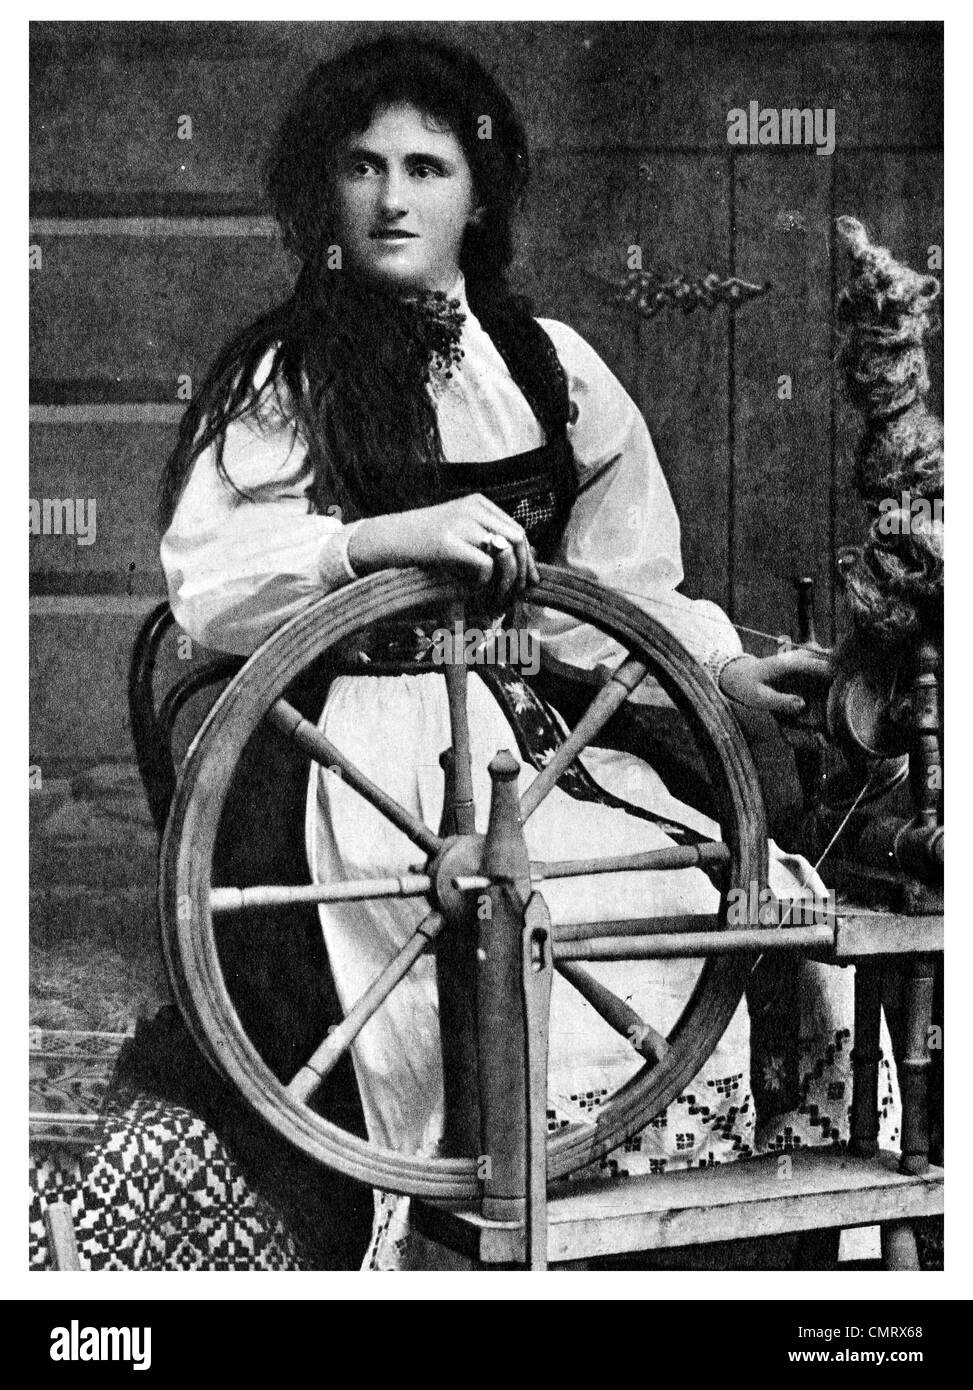 1919 Norway spinning wheel dress maker Stock Photo